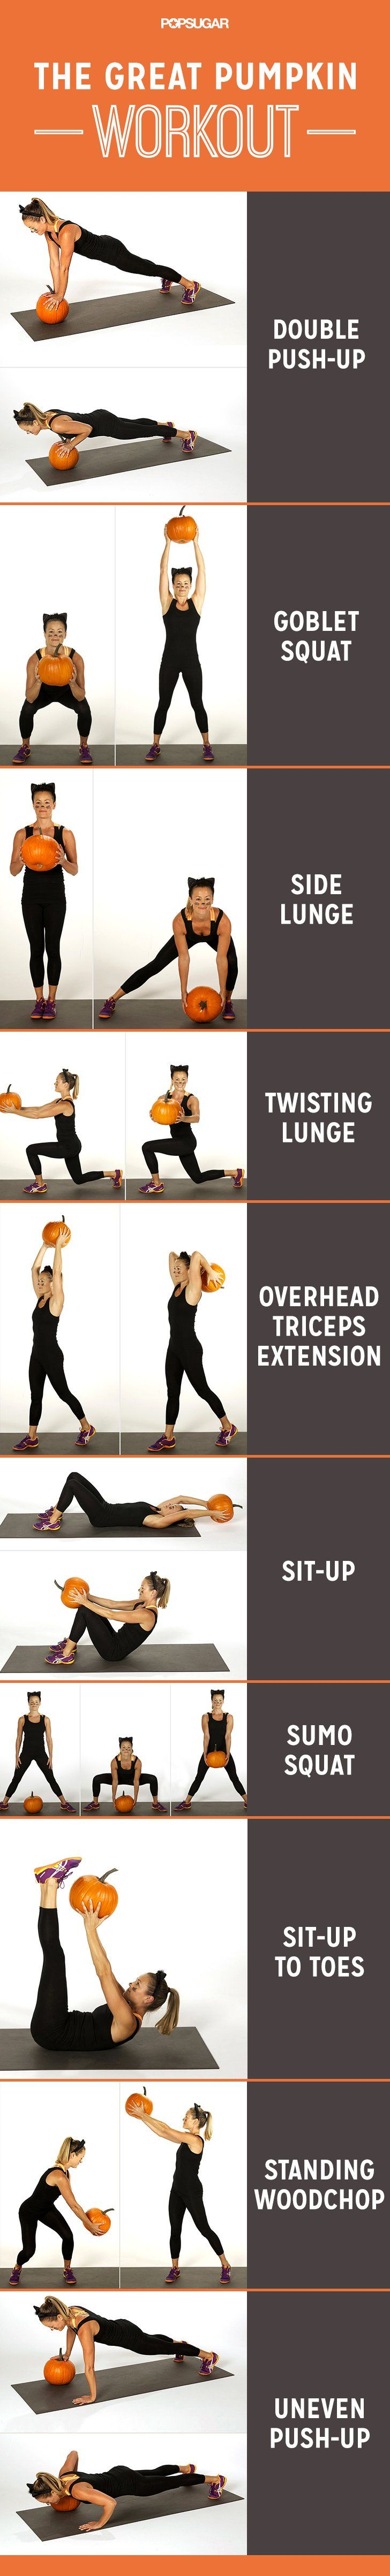 Pin for Later: Burn Off Those Halloween Candy Calories With This Pumpkin Workout